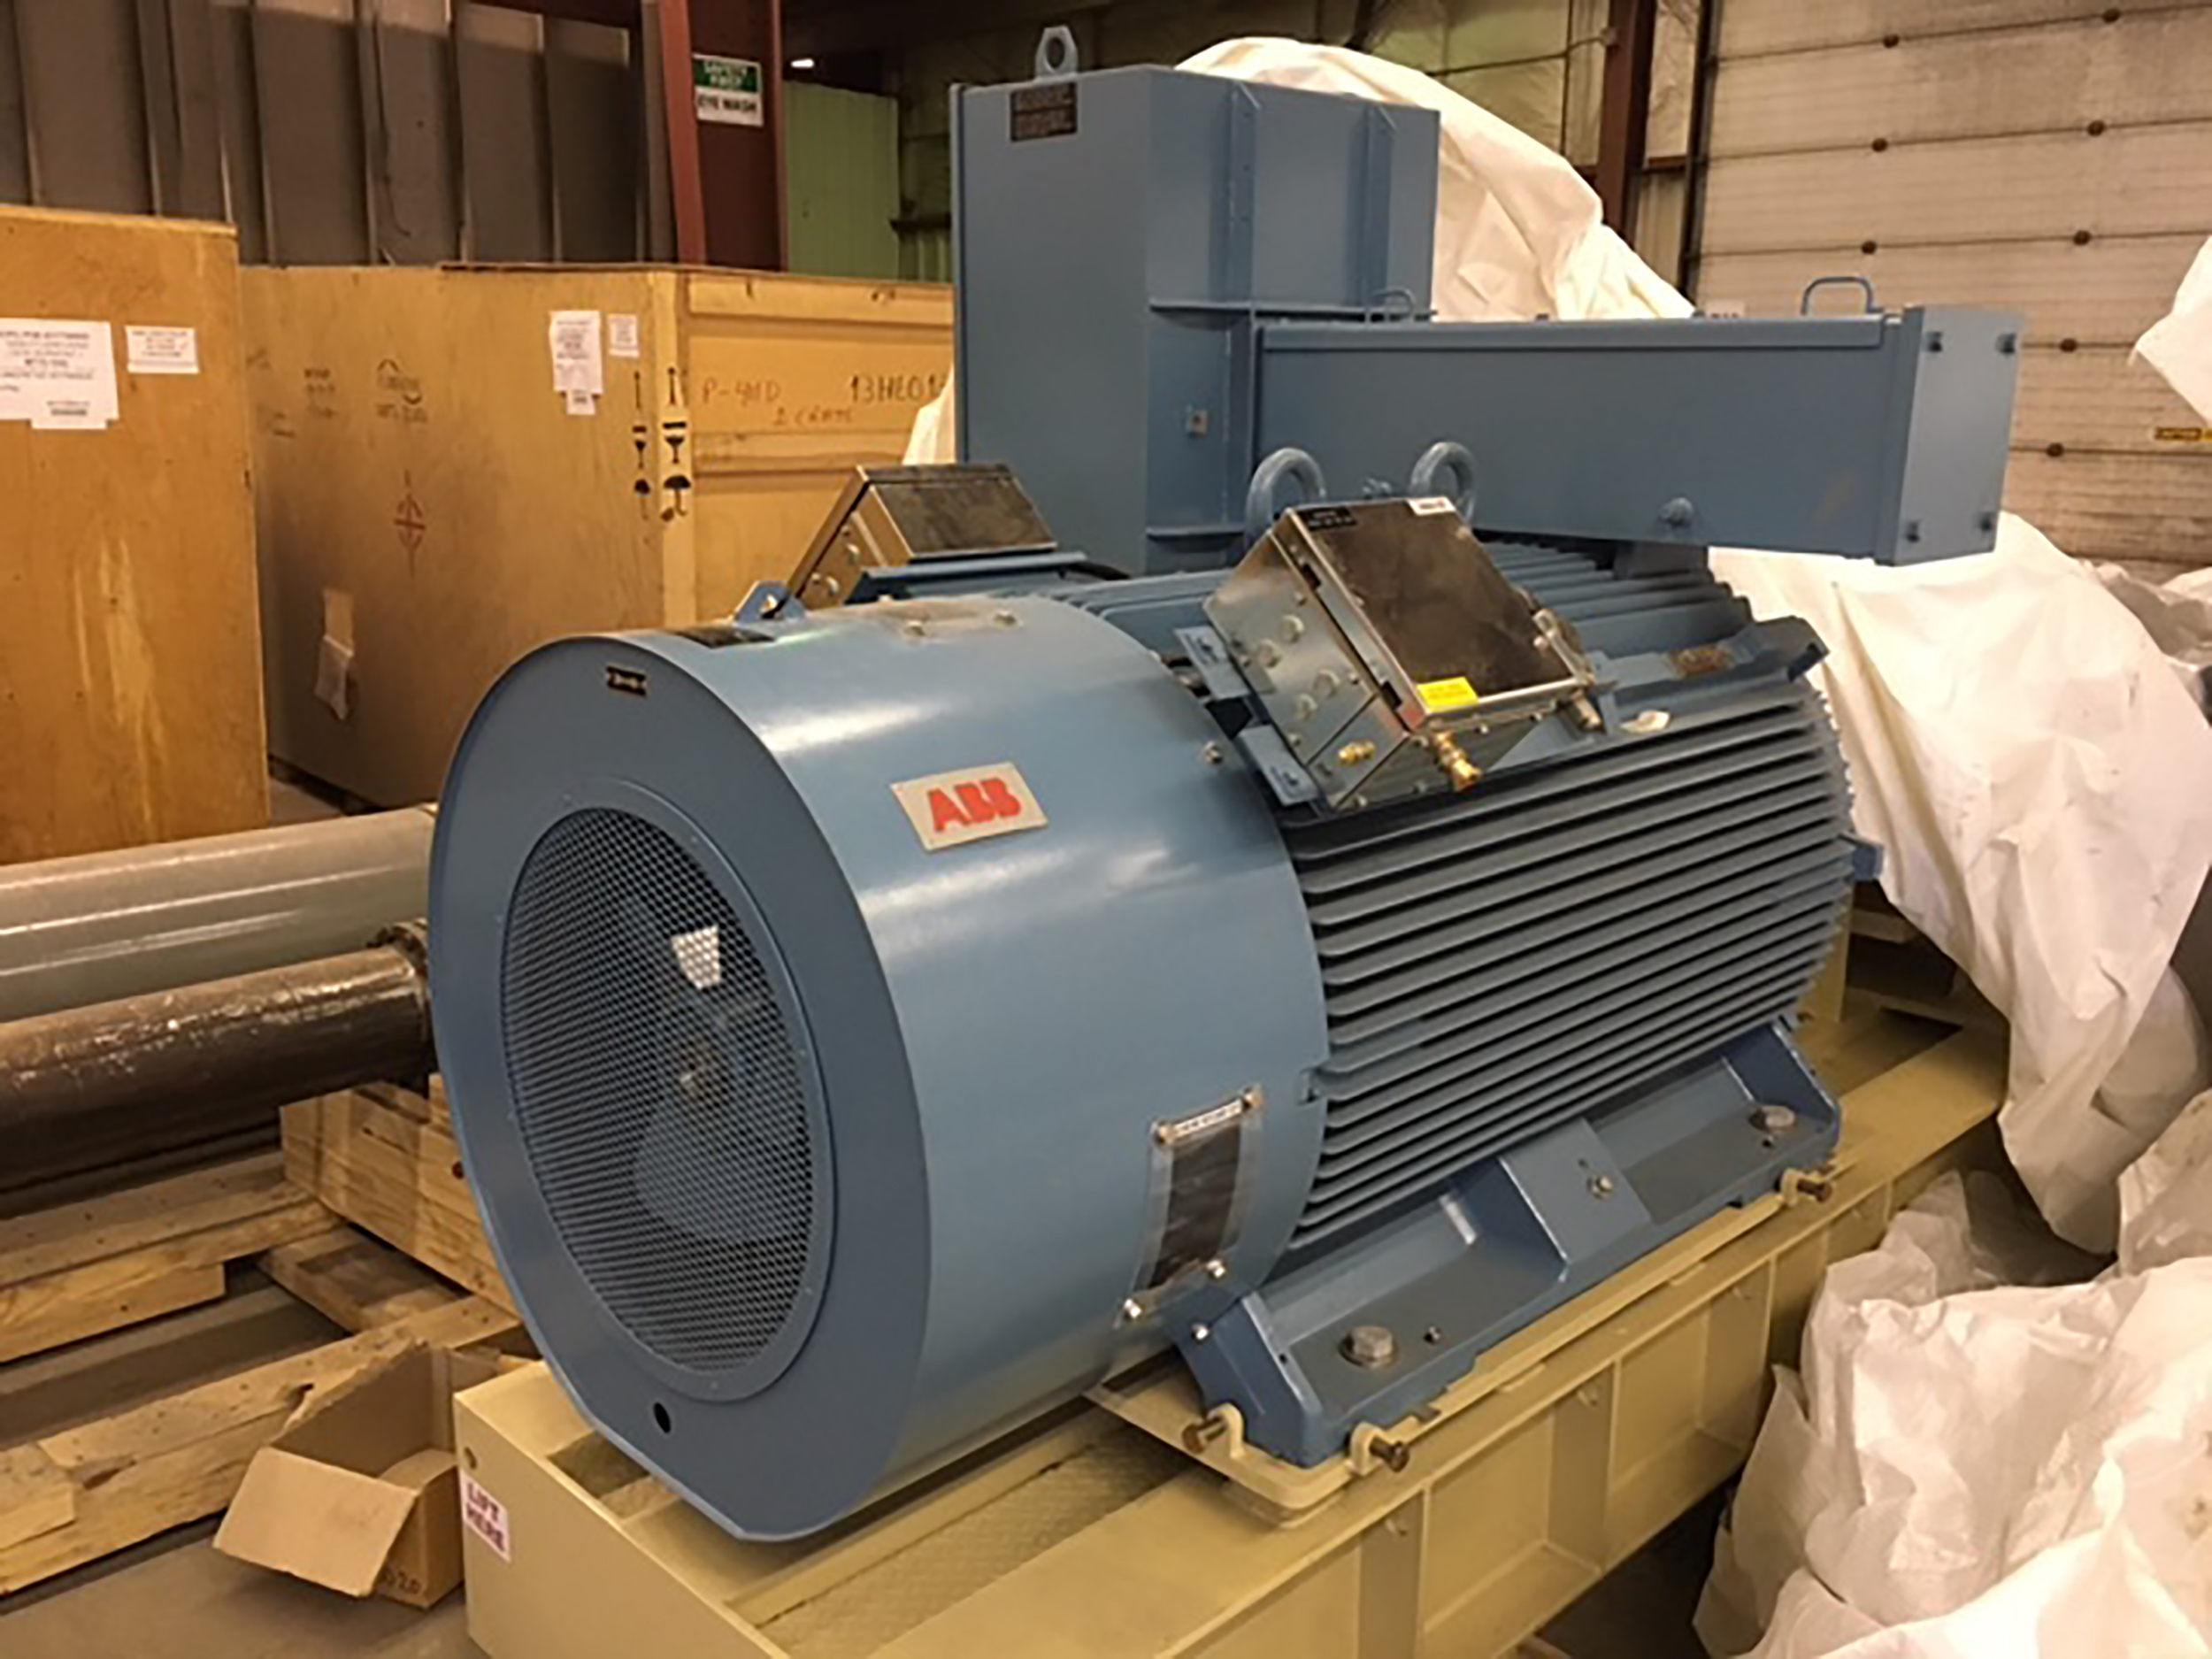 ABB motor 3 - Never used – Two (2x) 700HP Centrifugal Multi-stage Bare Pumps & Motors + Full Packaging Option for sale in Edmonton Alberta